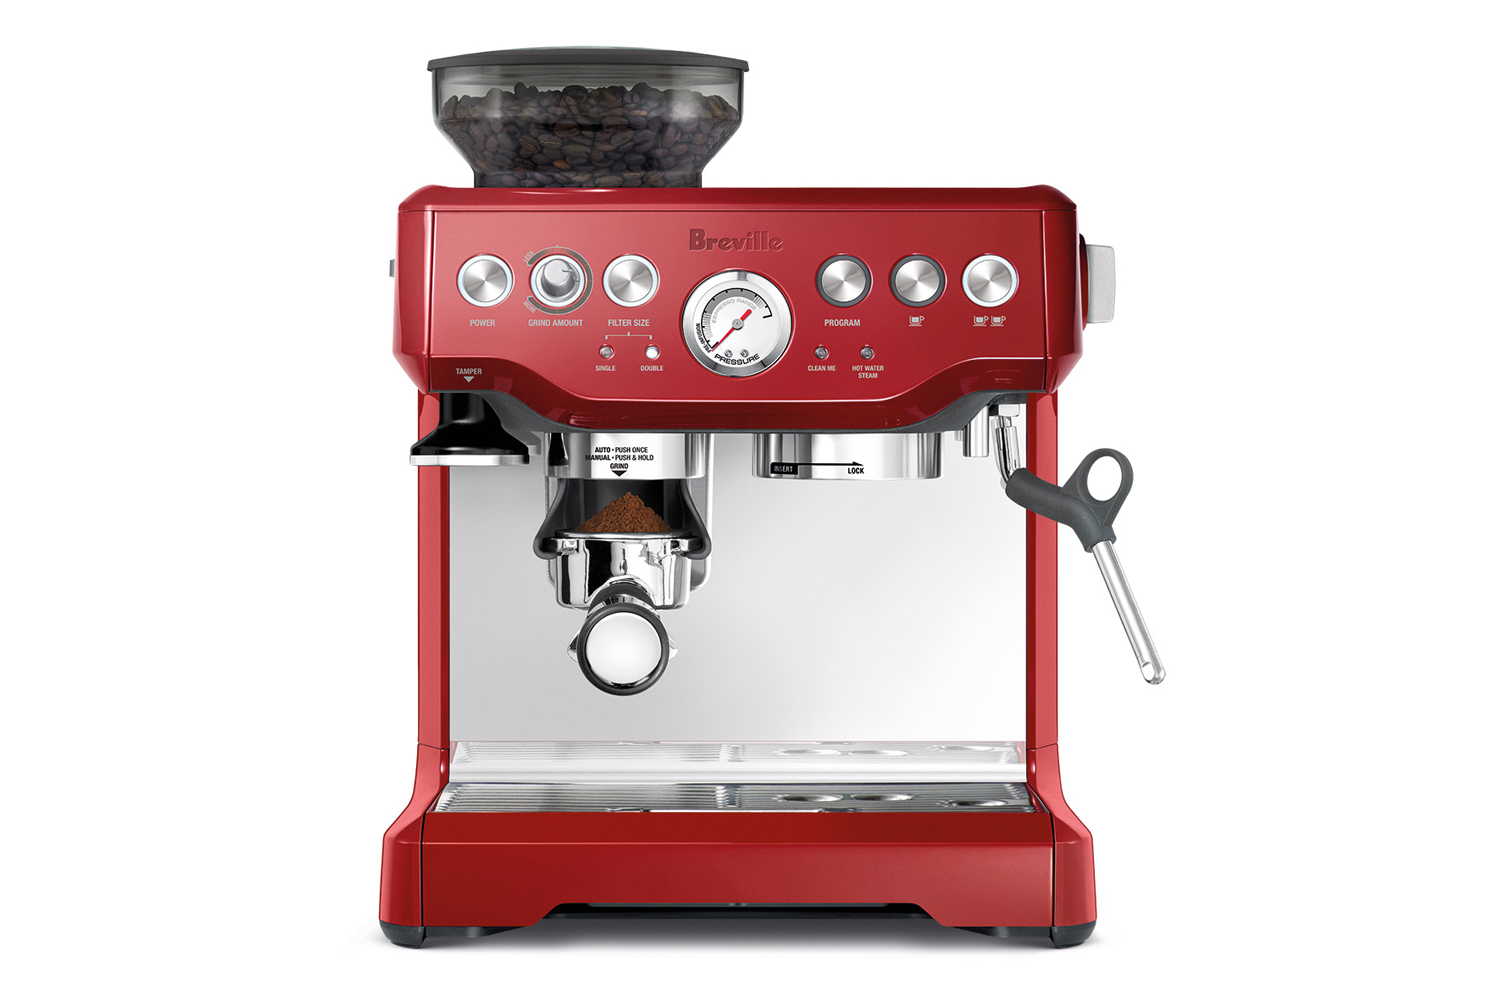 Breville Barista Express 870 - Cranberry Red